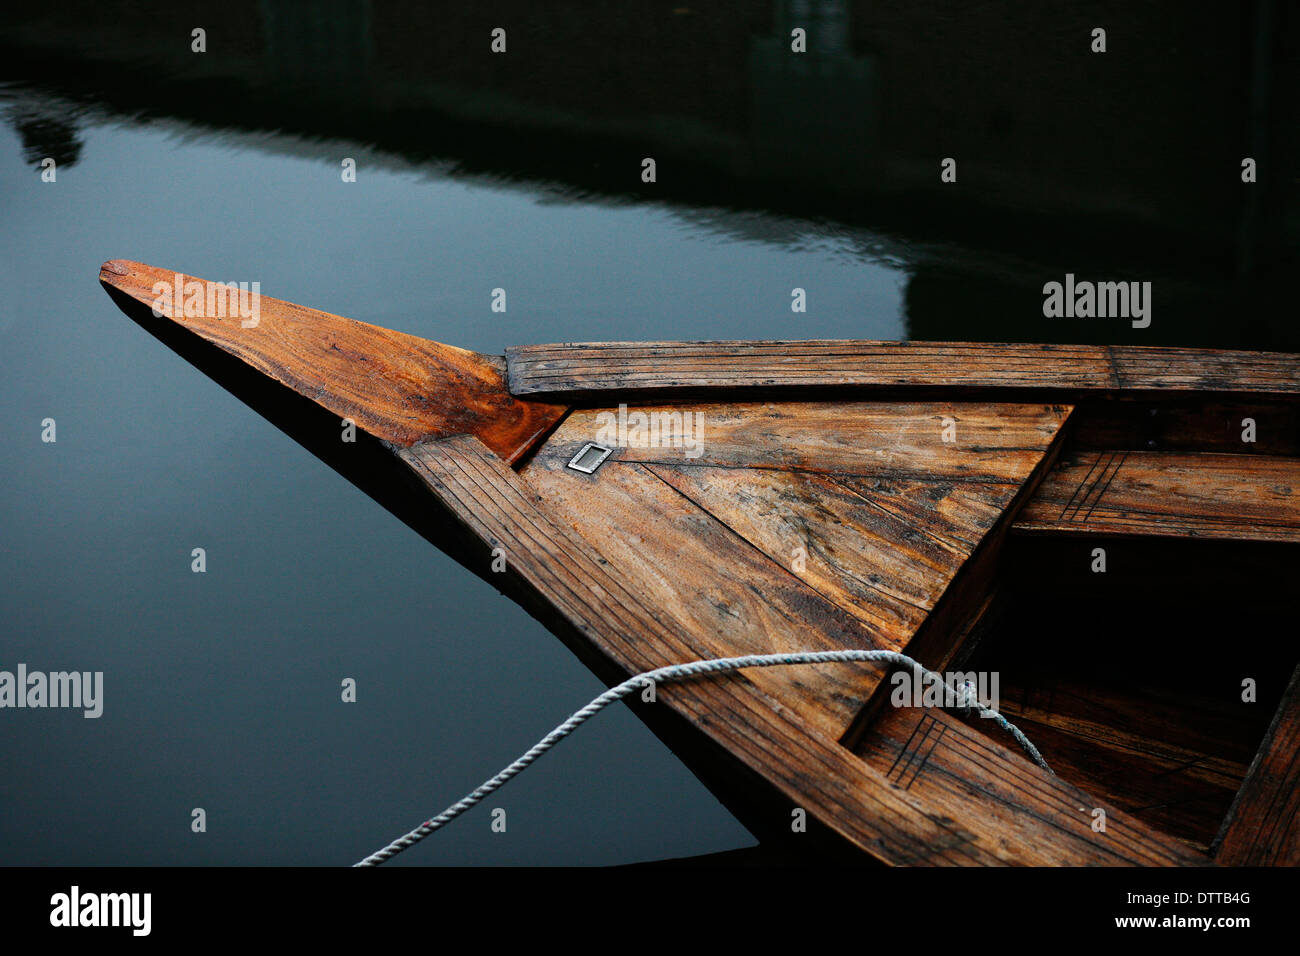 Wooden bow of Cambridge Punt with white rope trailing off it ,dark water - Stock Image